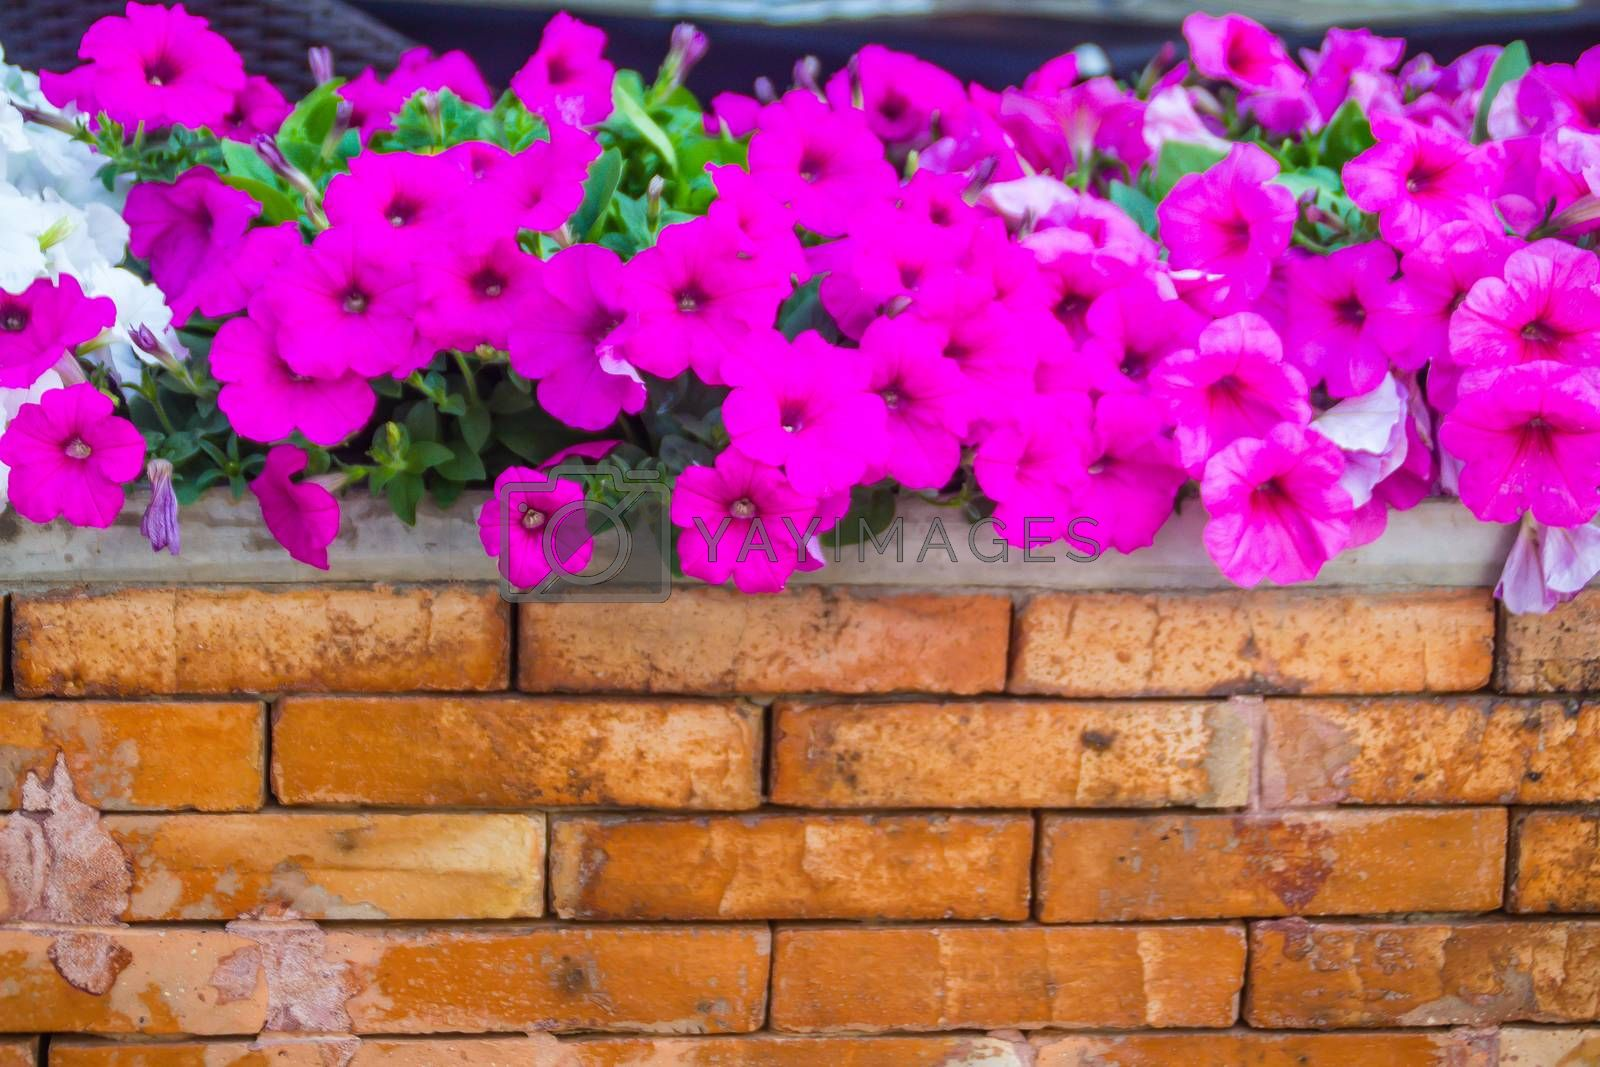 Close up beautiful pink petunia flowers with orange brick wall background and copy space for text. Petunias are one of our most popular summer bedding plants, flowering throughout summer.